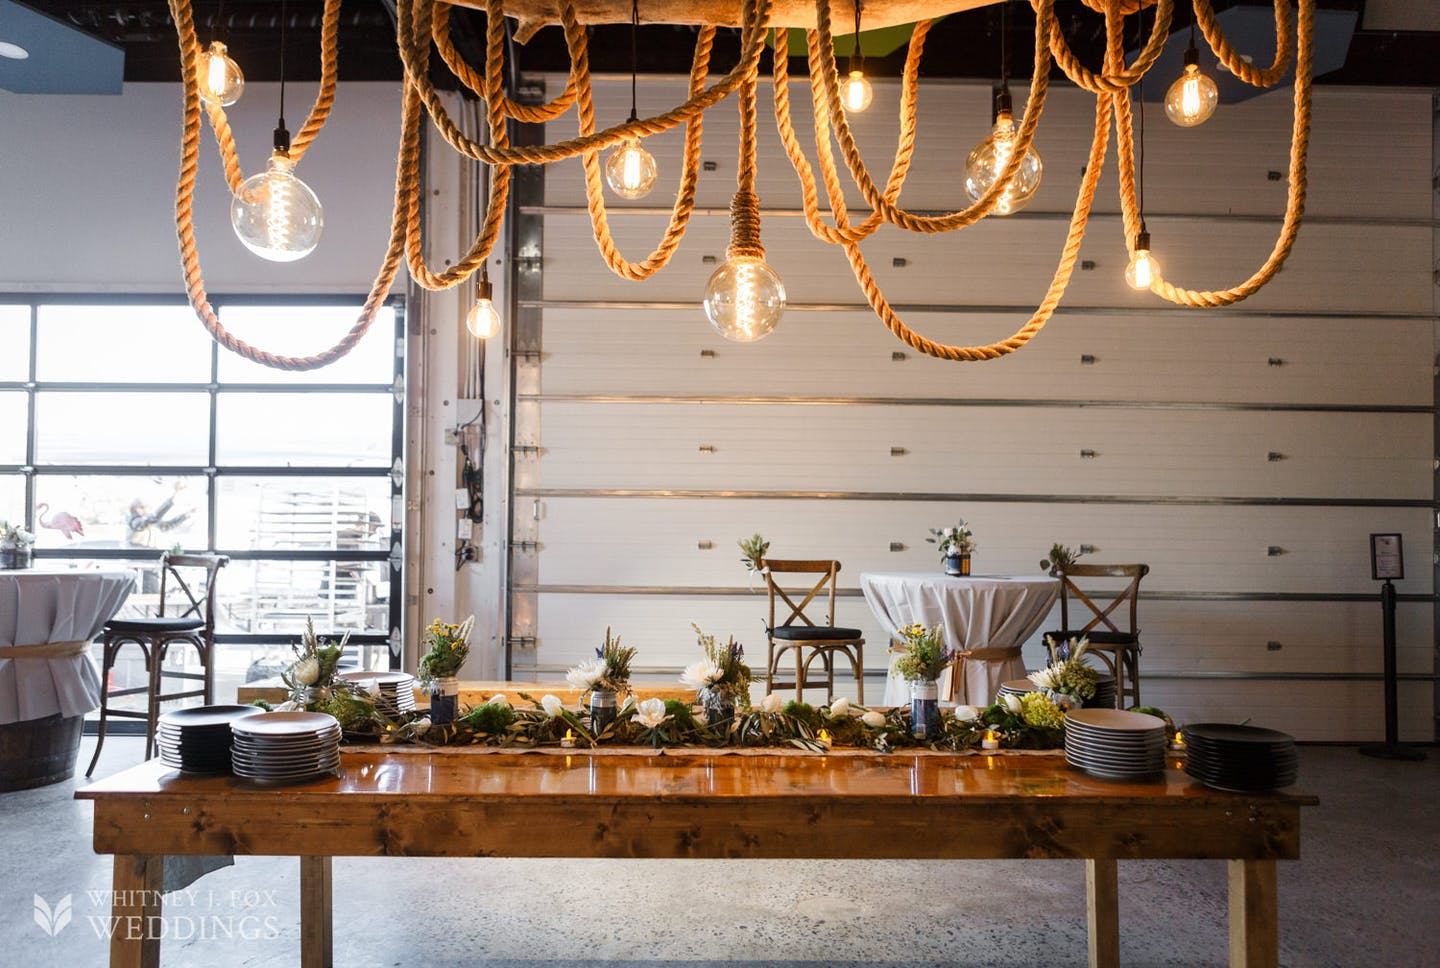 Brewing Up Weddings Event for Rising Tide's East Room Grand Opening on the evening of Thursday, January 18, 2018.  About 150 Maine wedding industry vendors enjoyed a casual winter night out on Portland's peninsula with colleagues new and old. Particip